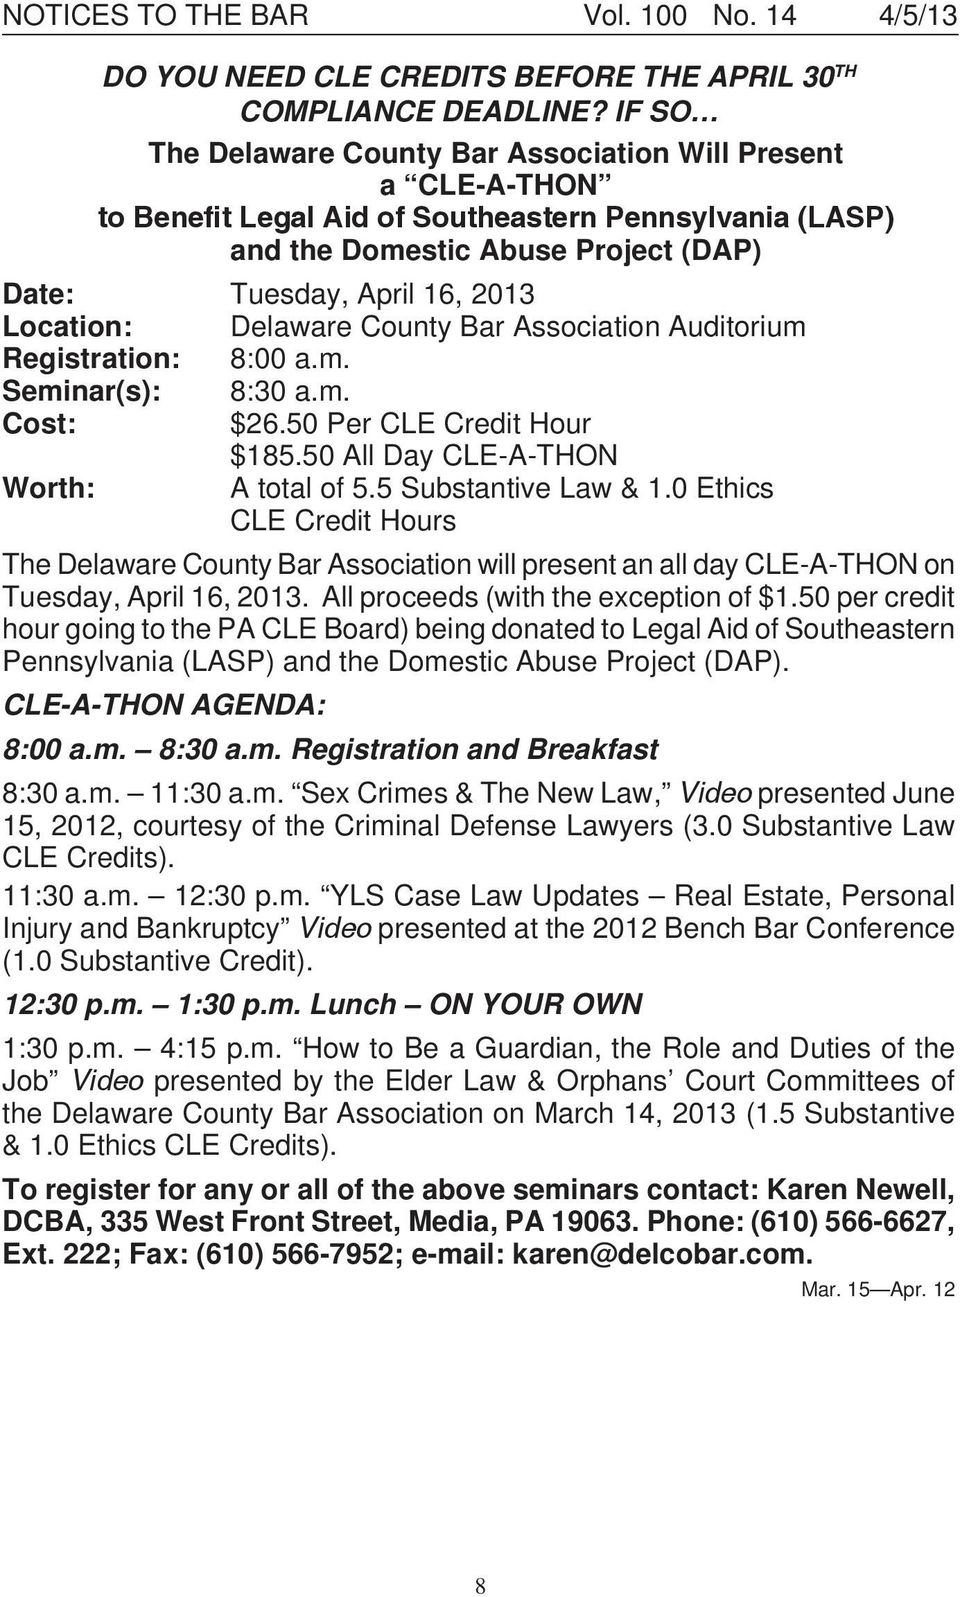 Location: Delaware County Bar Association Auditorium Registration: 8:00 a.m. Seminar(s): 8:30 a.m. Cost: $26.50 Per CLE Credit Hour $185.50 All Day CLE-A-THON Worth: A total of 5.